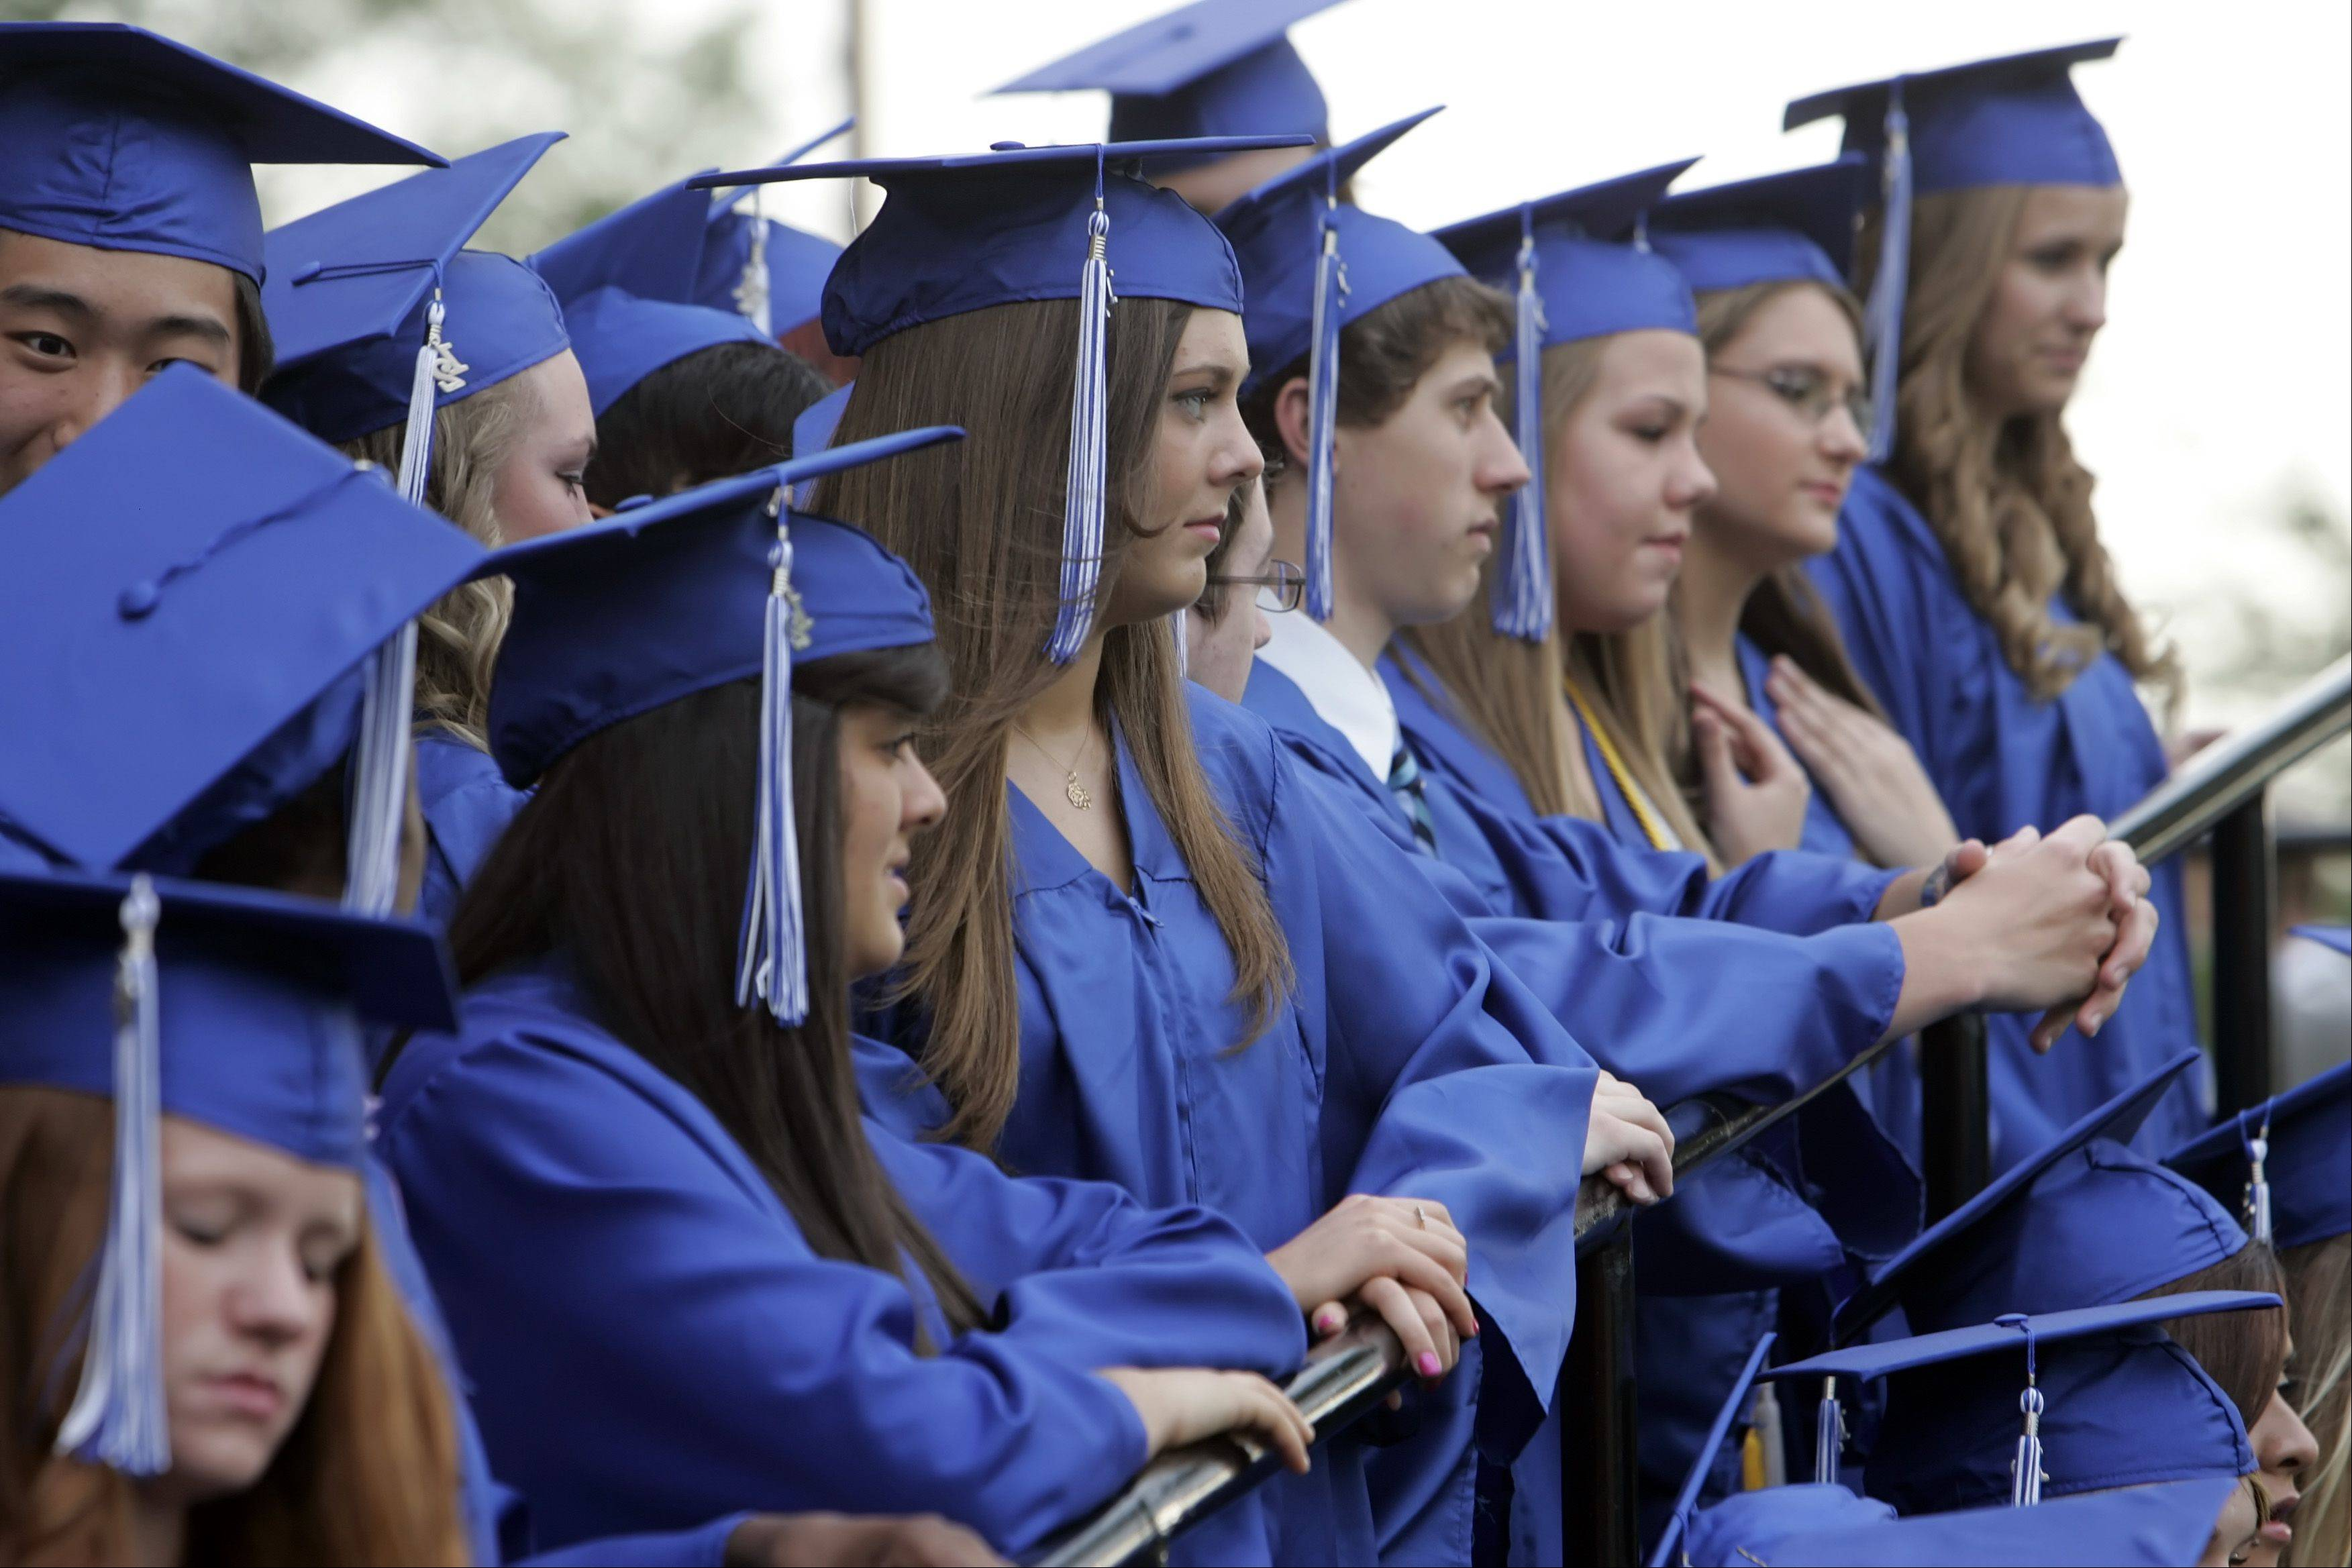 Images from the Westminster Christian High School graduation ceremony Friday, May 25, 2012 in Elgin.